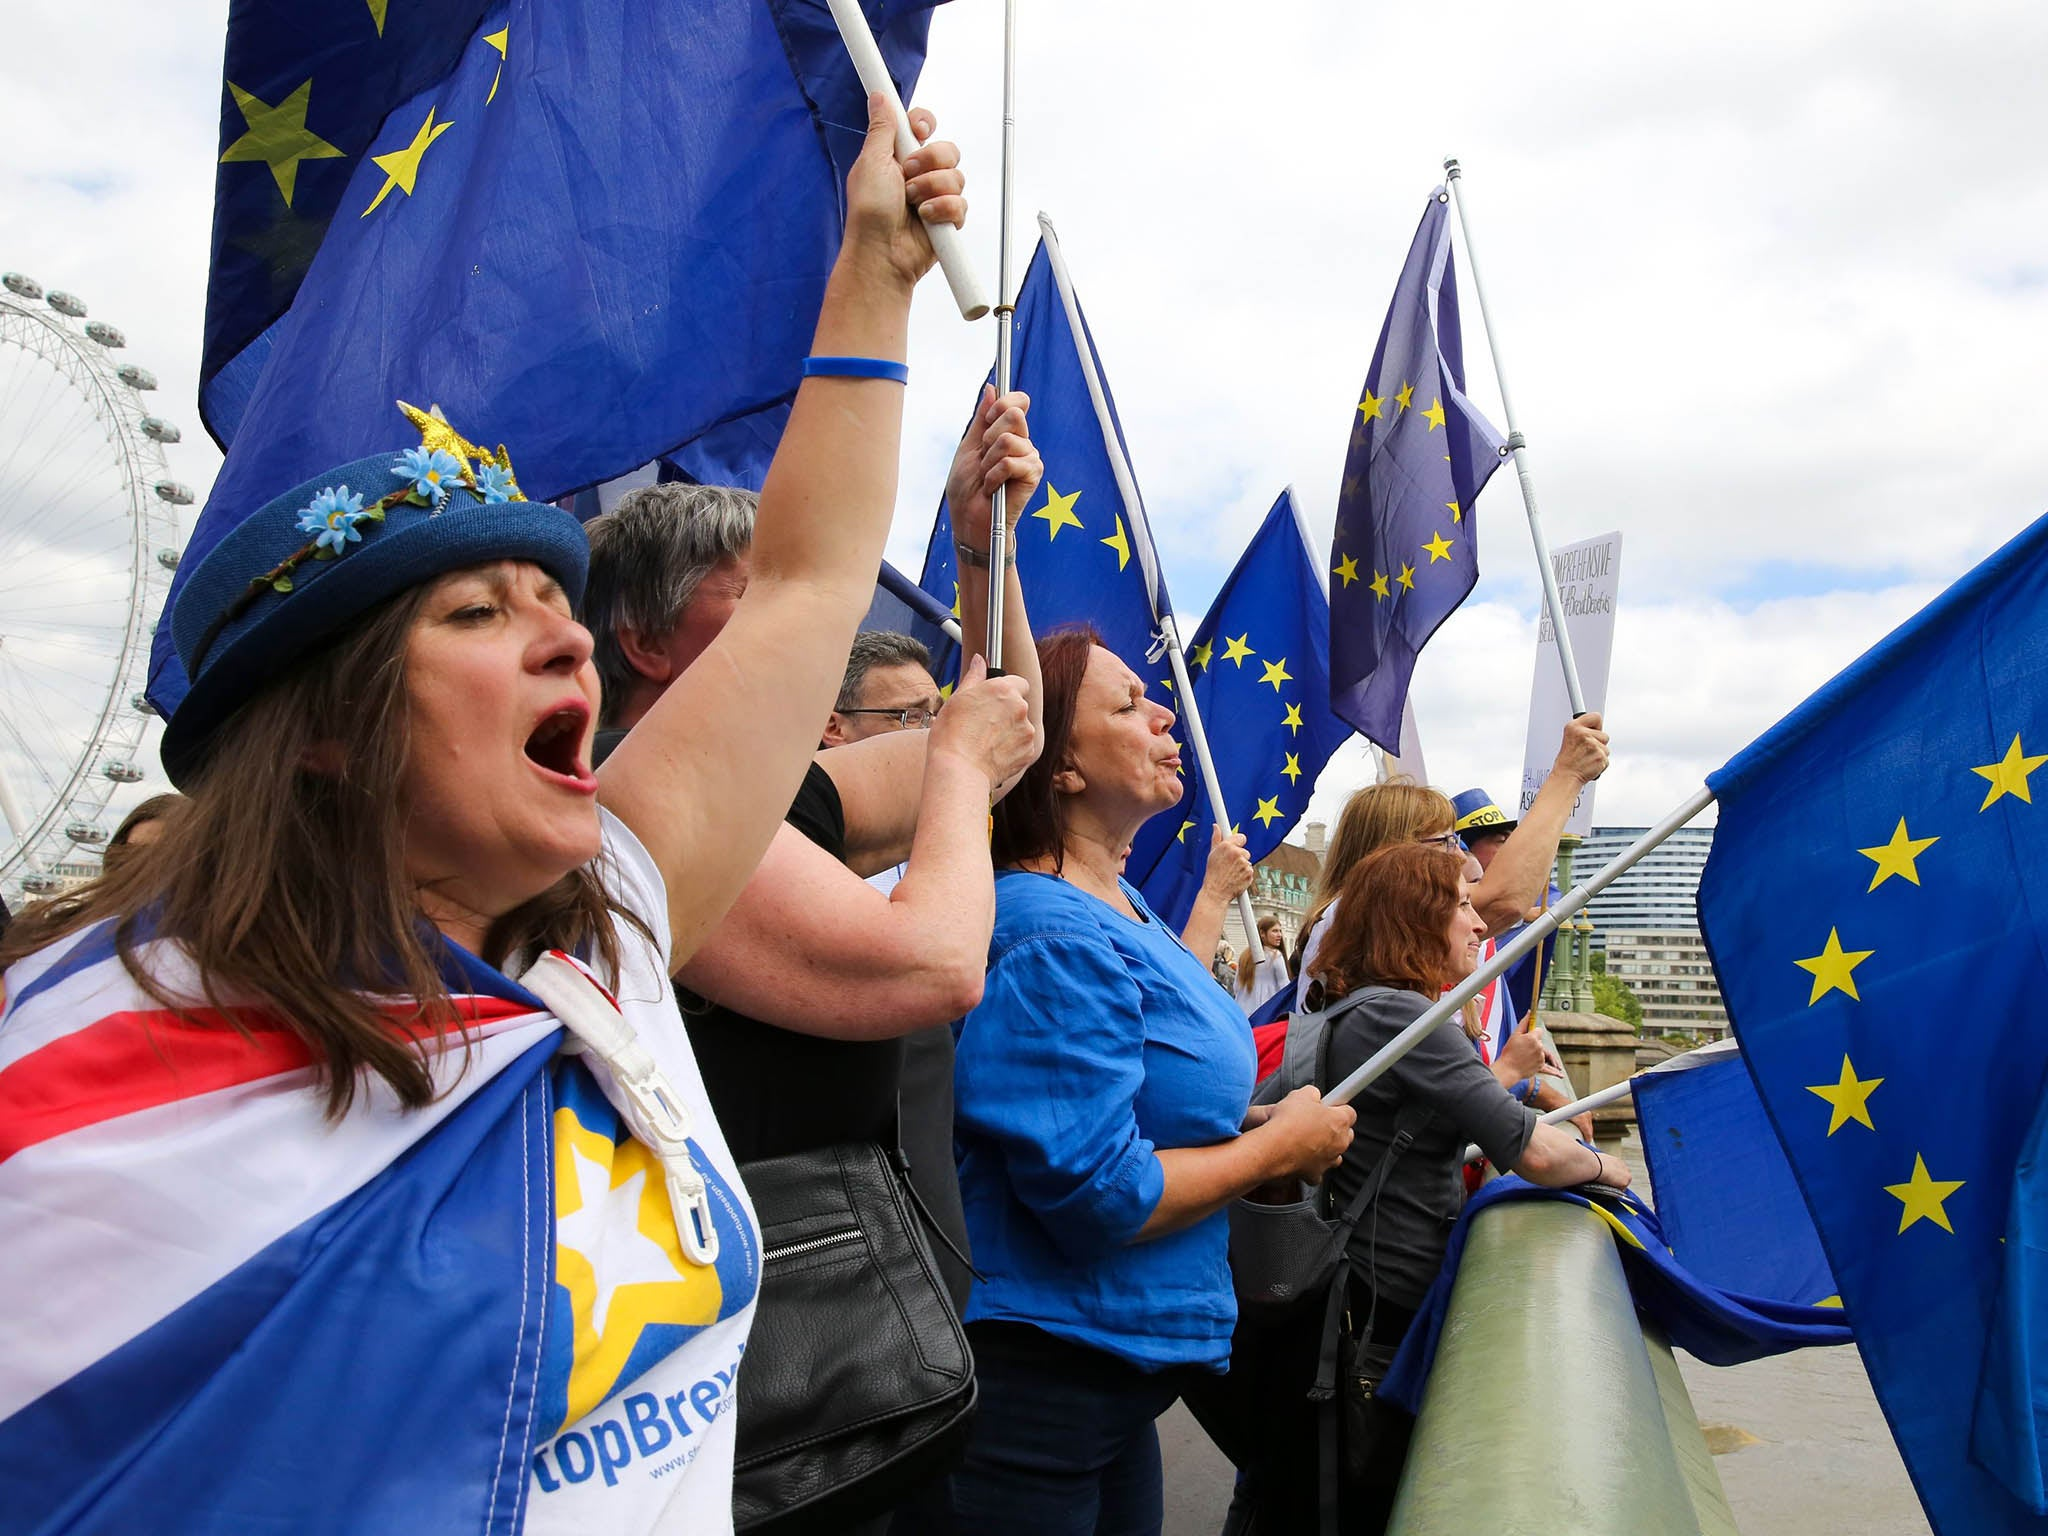 Opinion: A hard Brexit is looking increasingly likely – according to behavioural economics